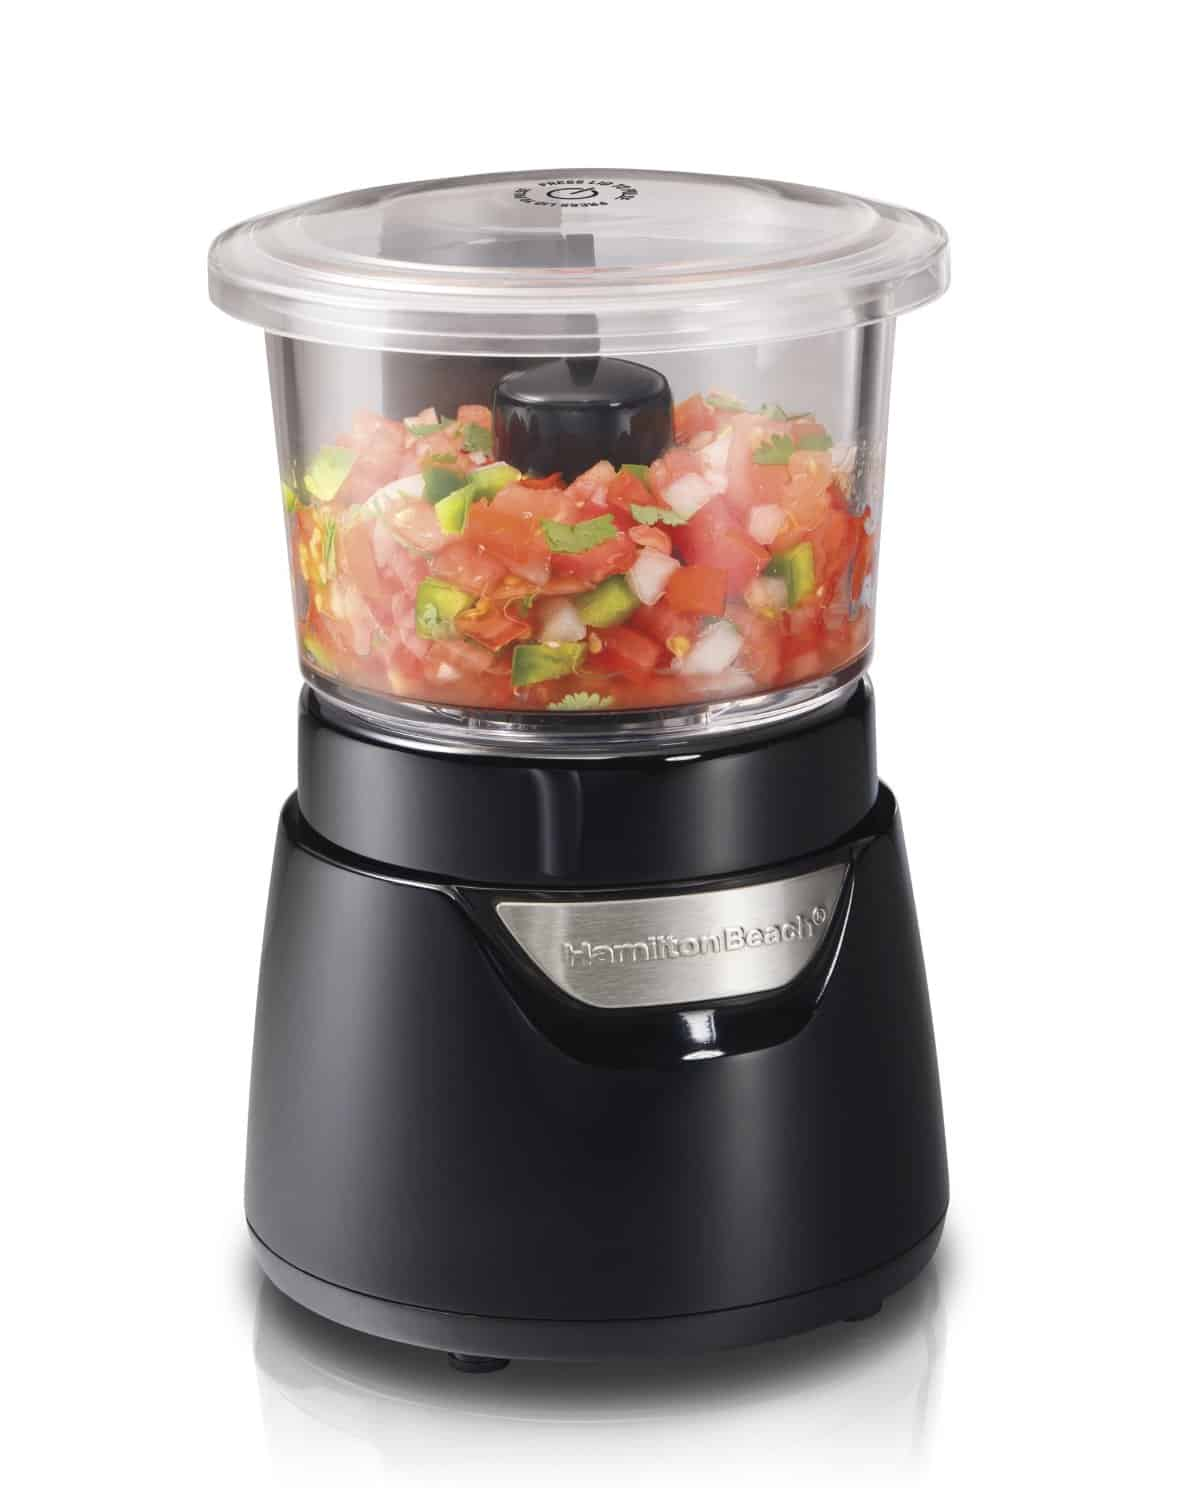 Hamilton Beach 72860 Stack and Press 3-Cup Glass Bowl Chopper